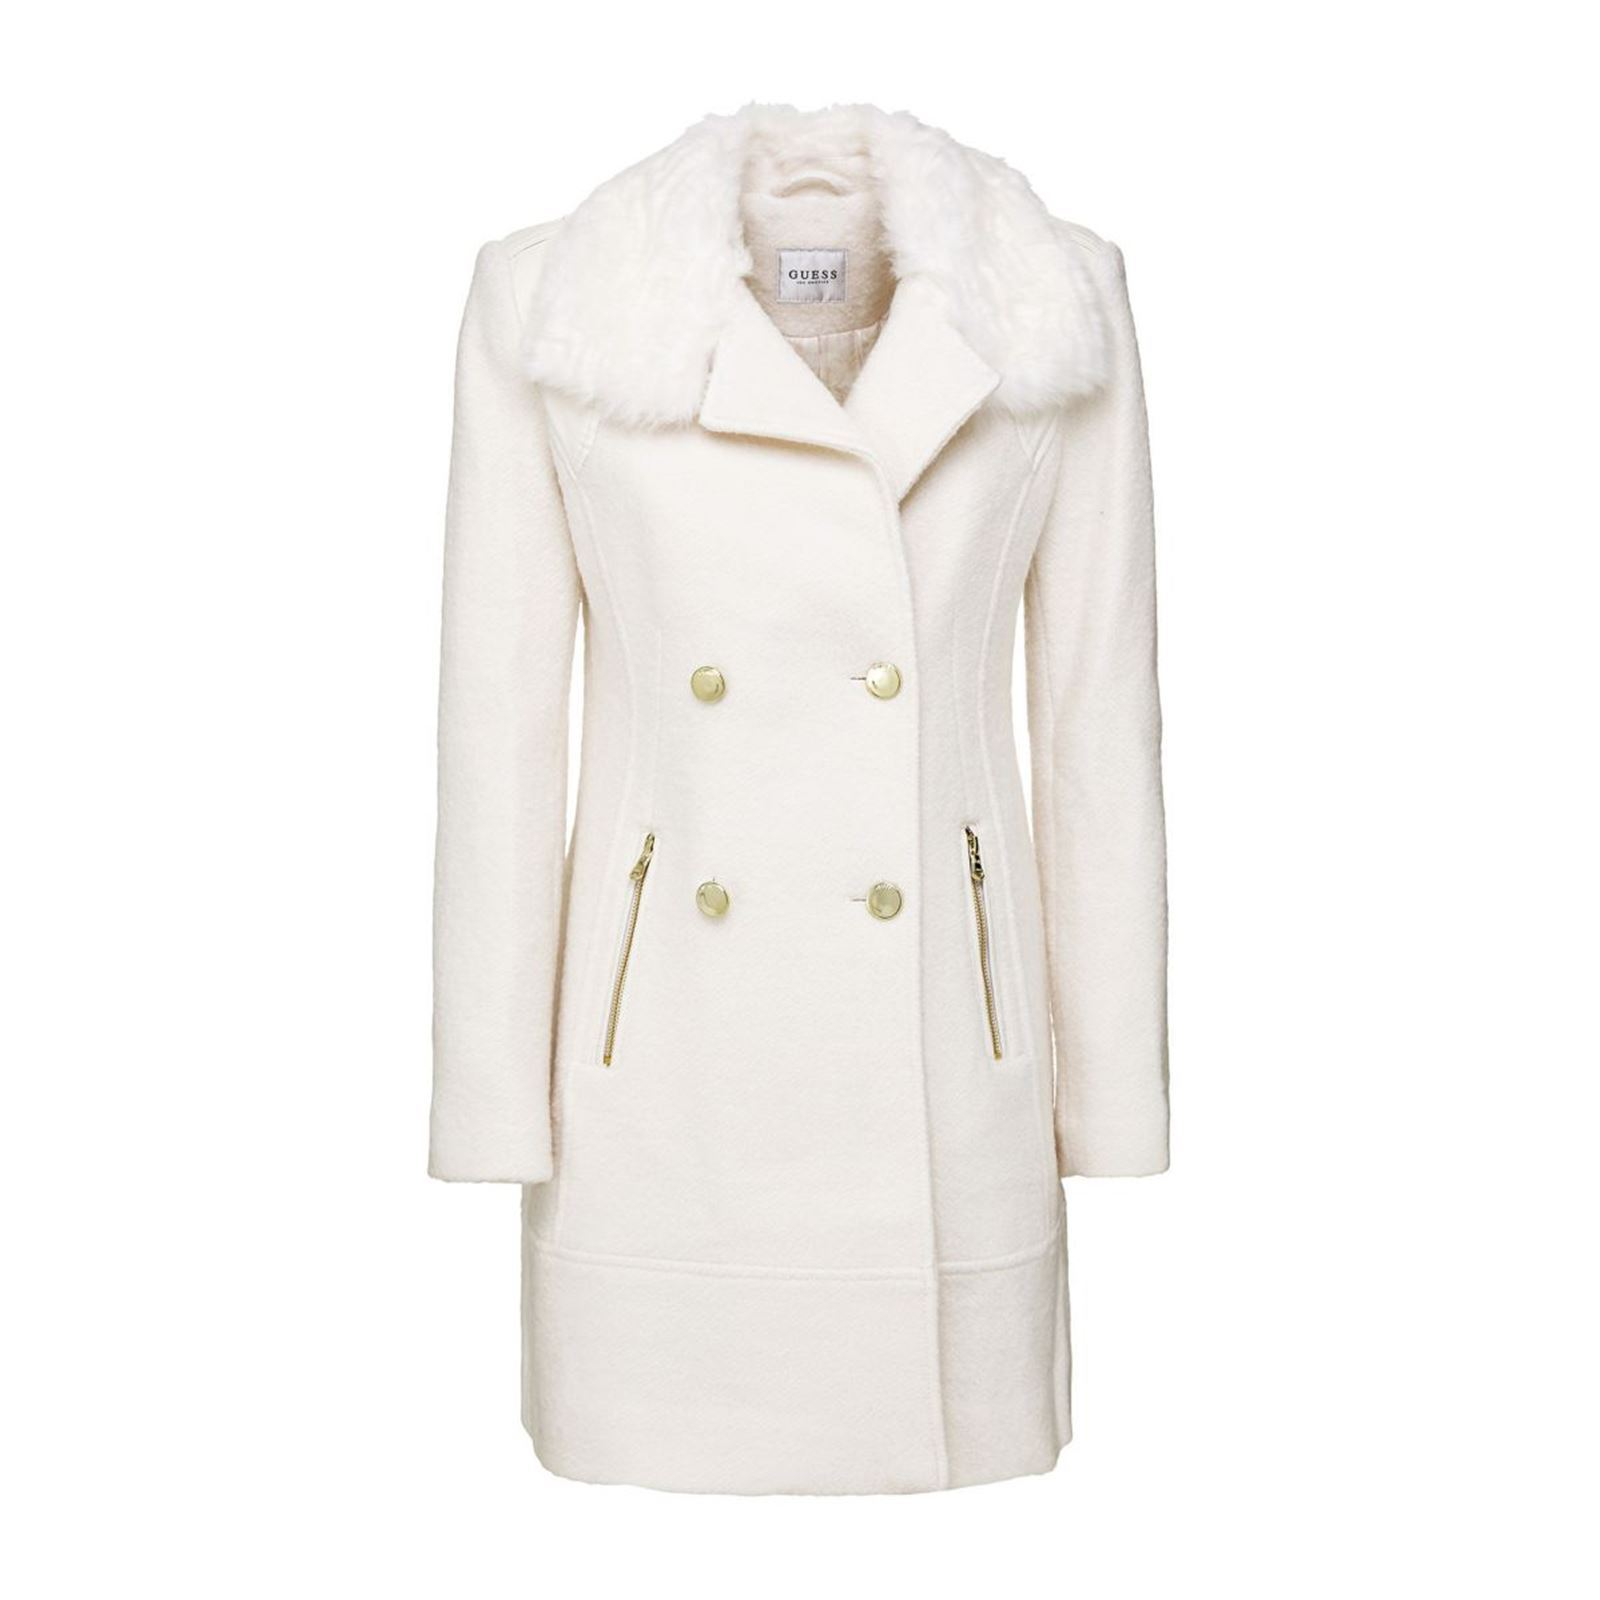 Manteau Guess Brandalley Revers Blanc Imitation Fourrure ZqrxU1qd